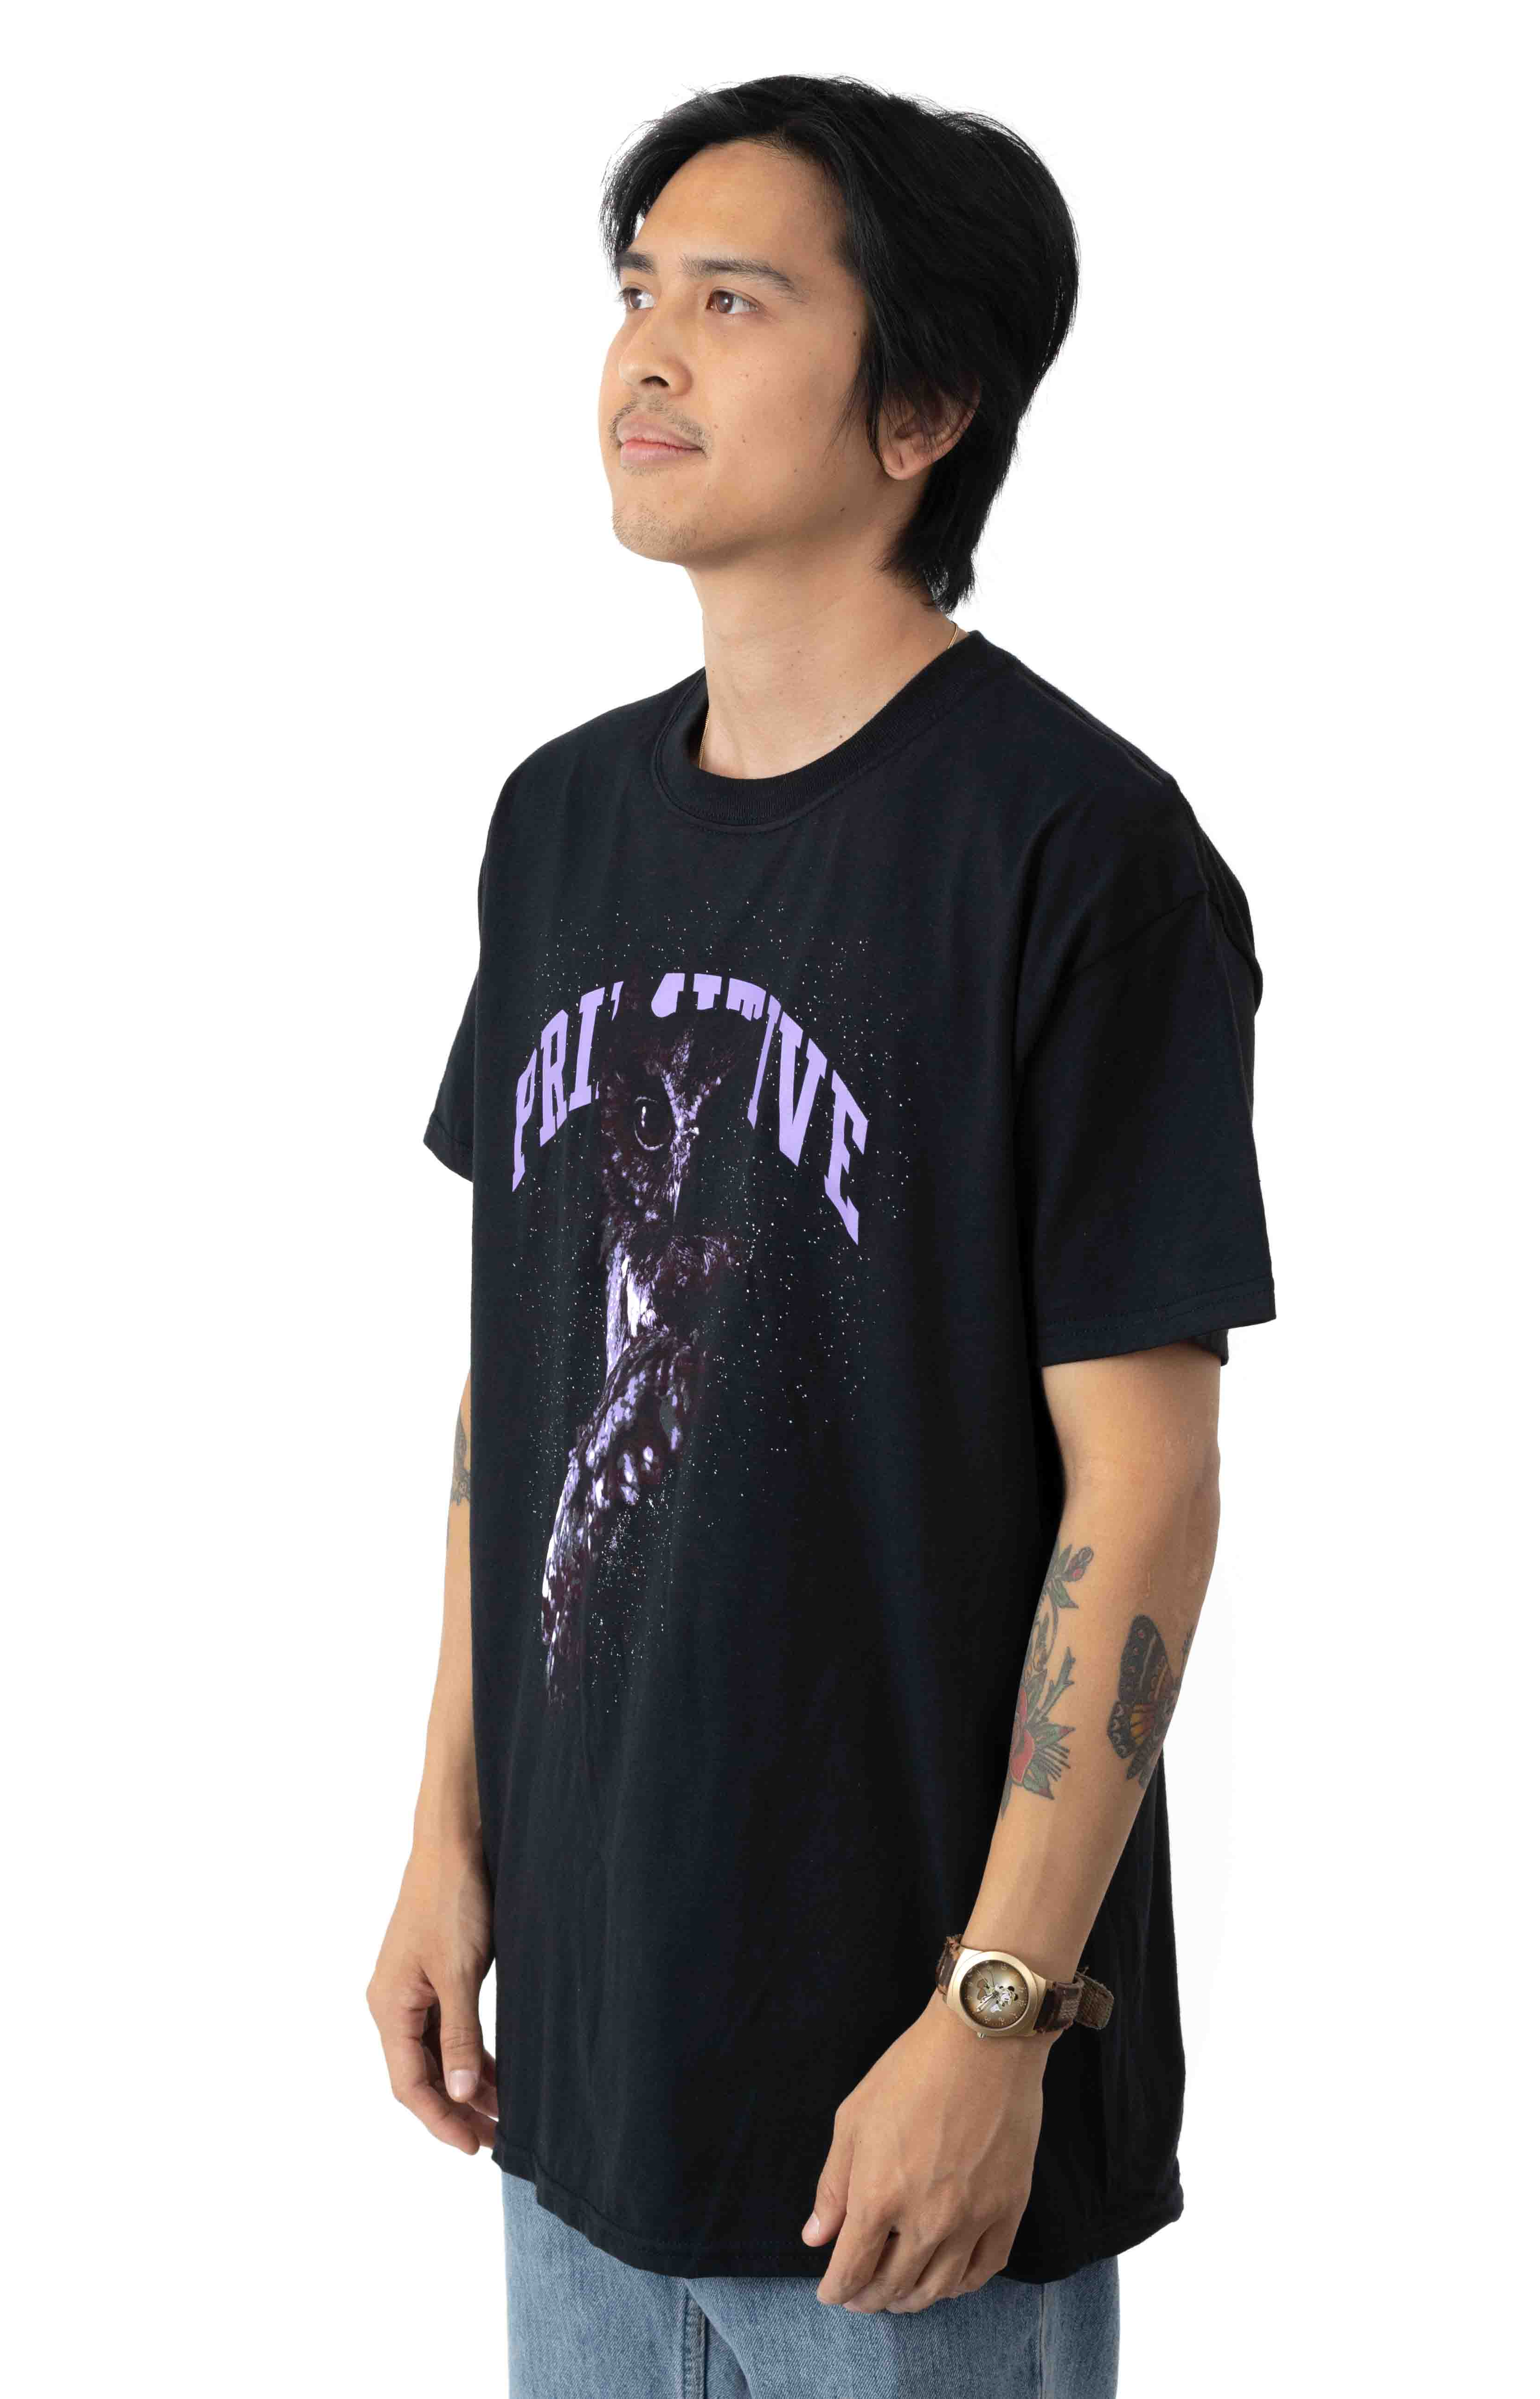 Night Owl T-Shirt - Black 2